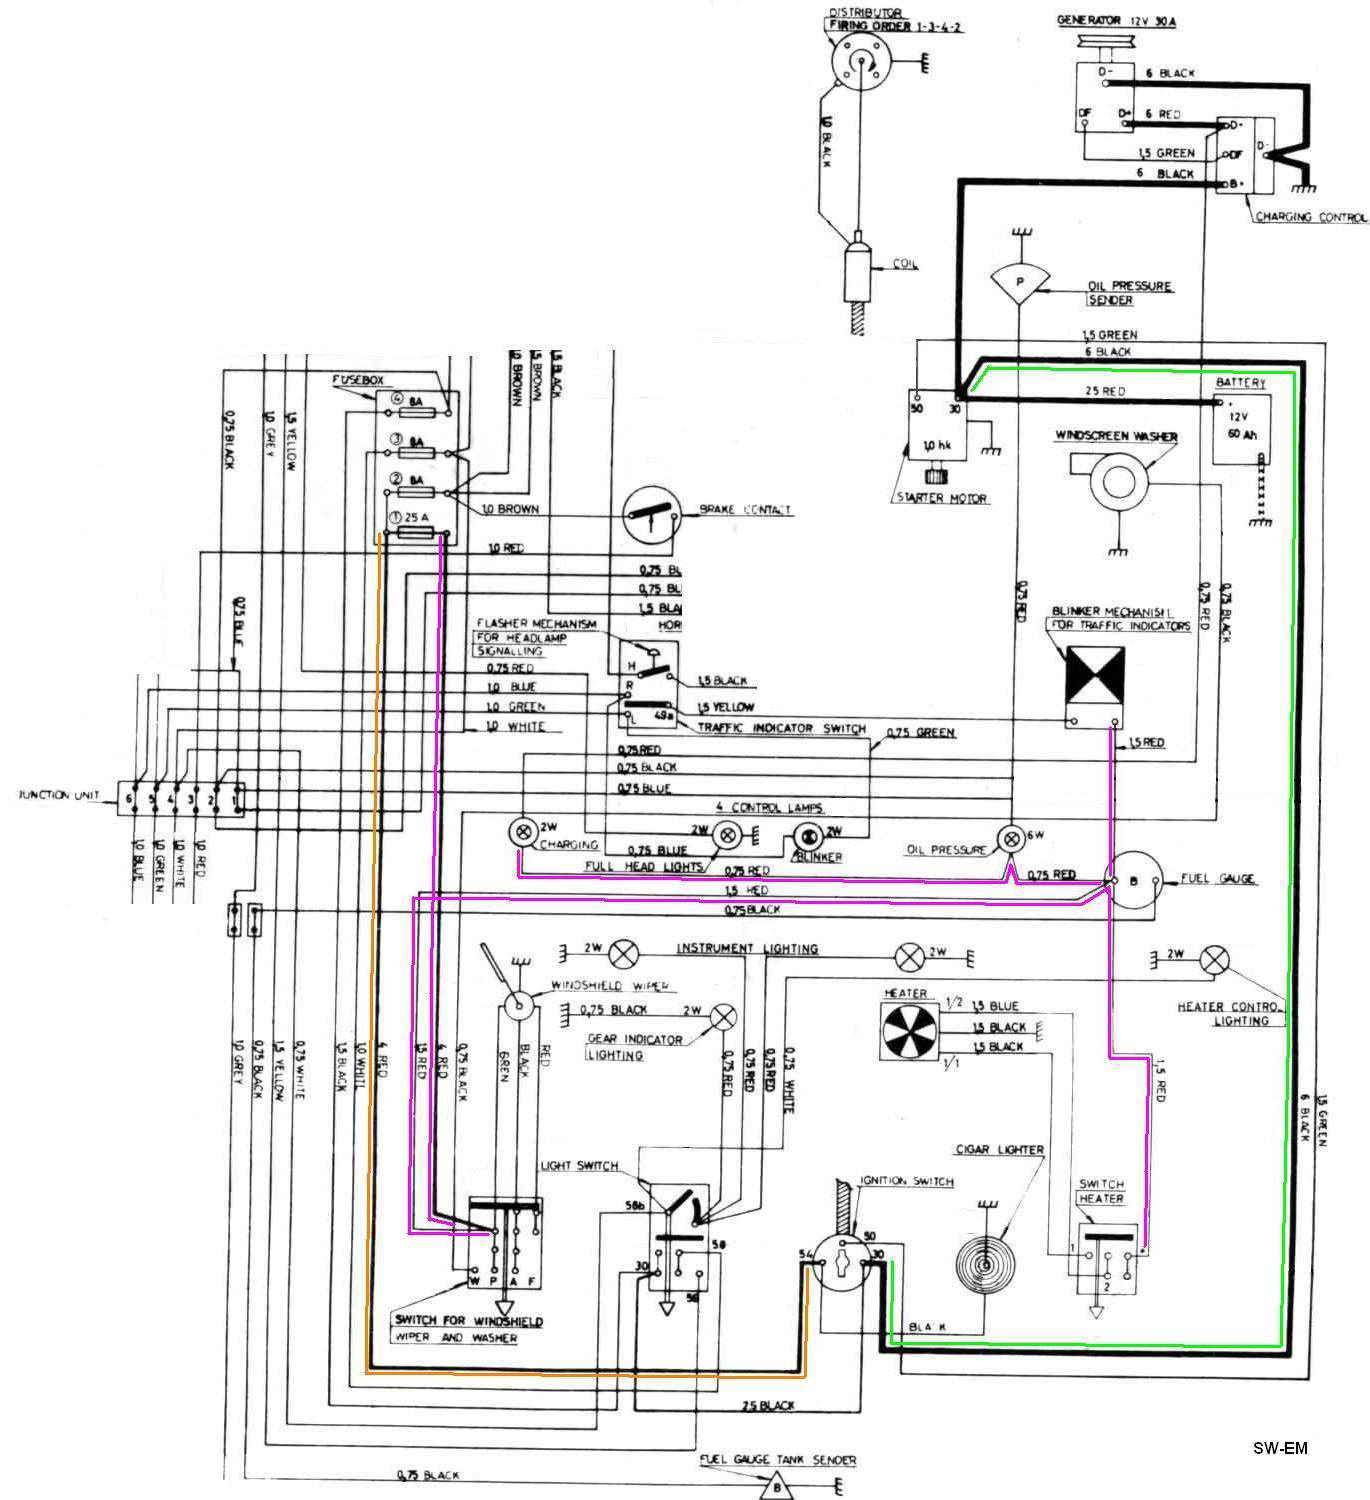 Wiring Diagram Volvo Amazon Opinions About 2007 S60 Engine Schematics Diagrams U2022 Rh Parntesis Co Heater Fuel